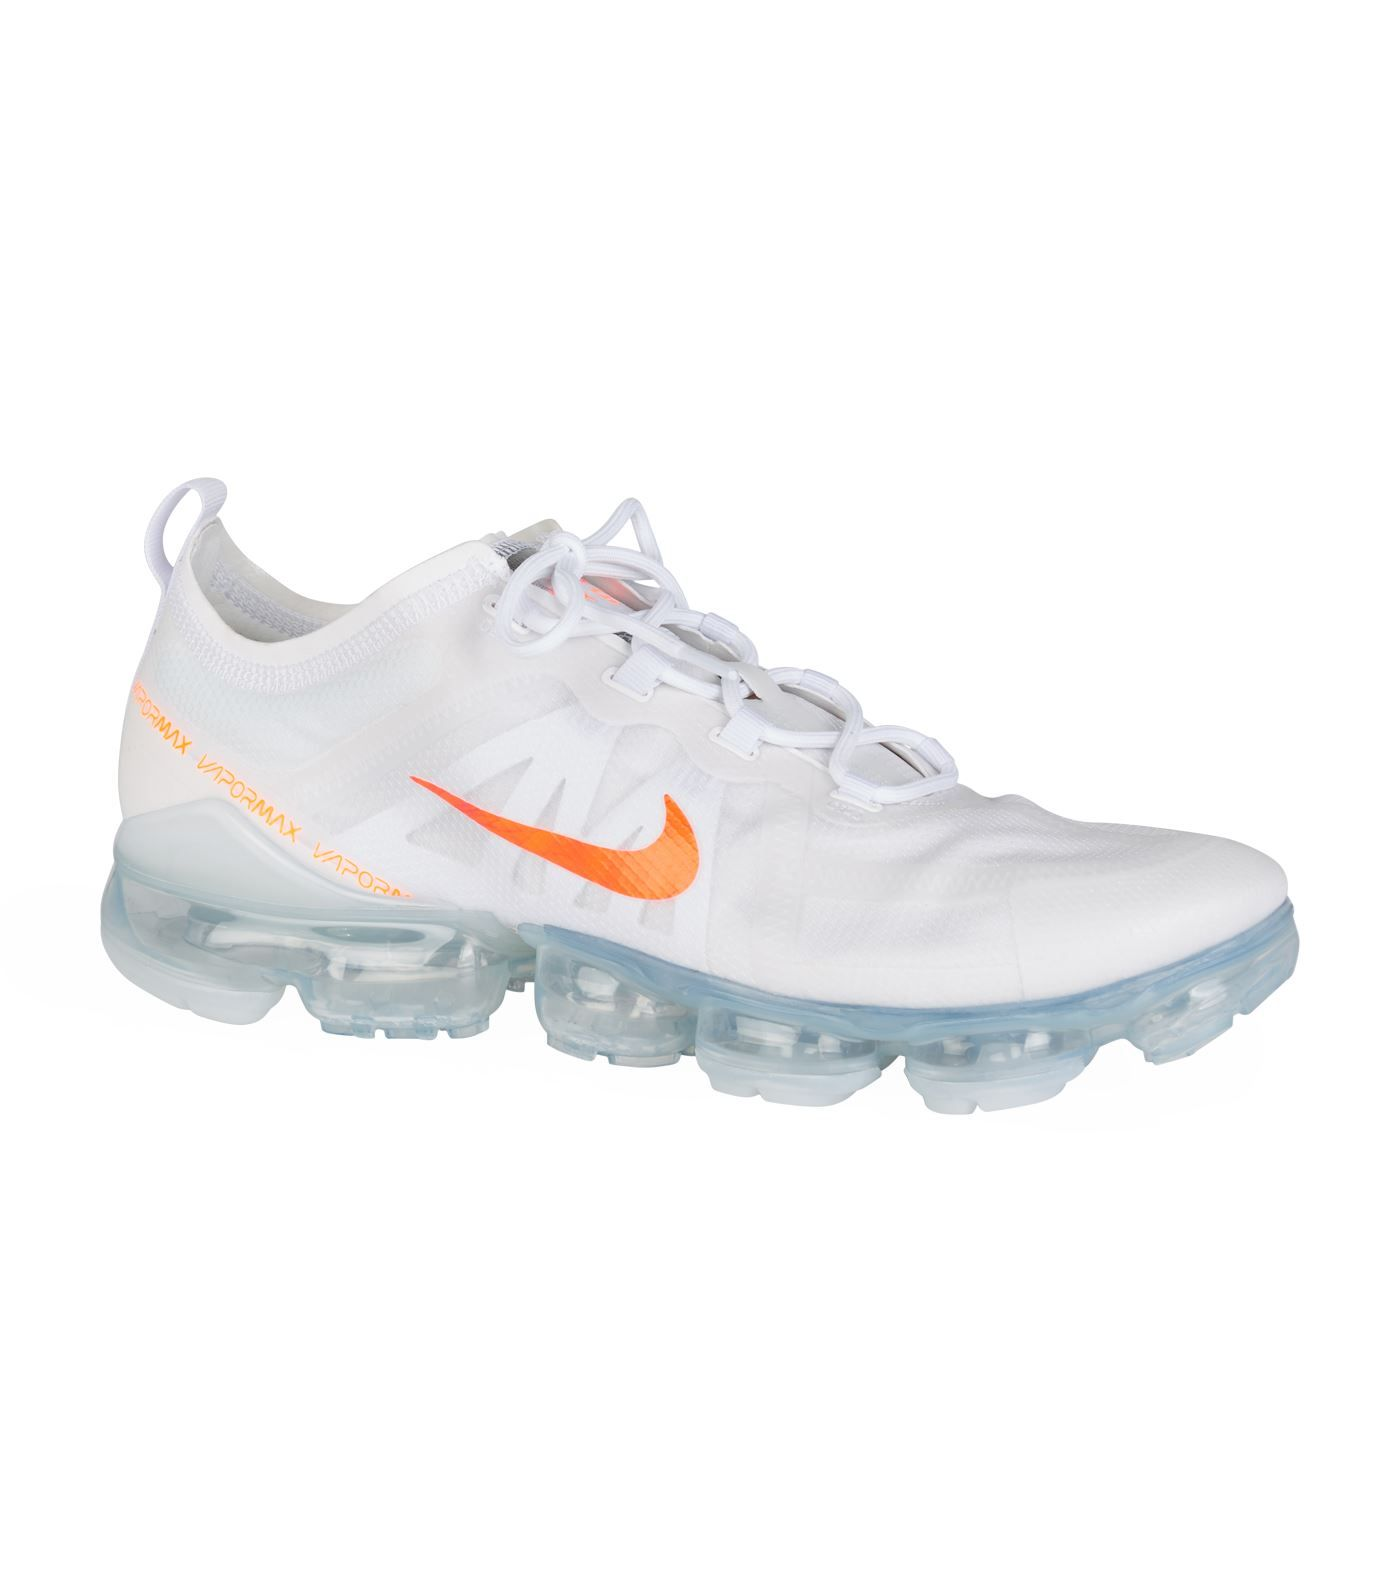 Air Vapormax 2019 Trainers In White